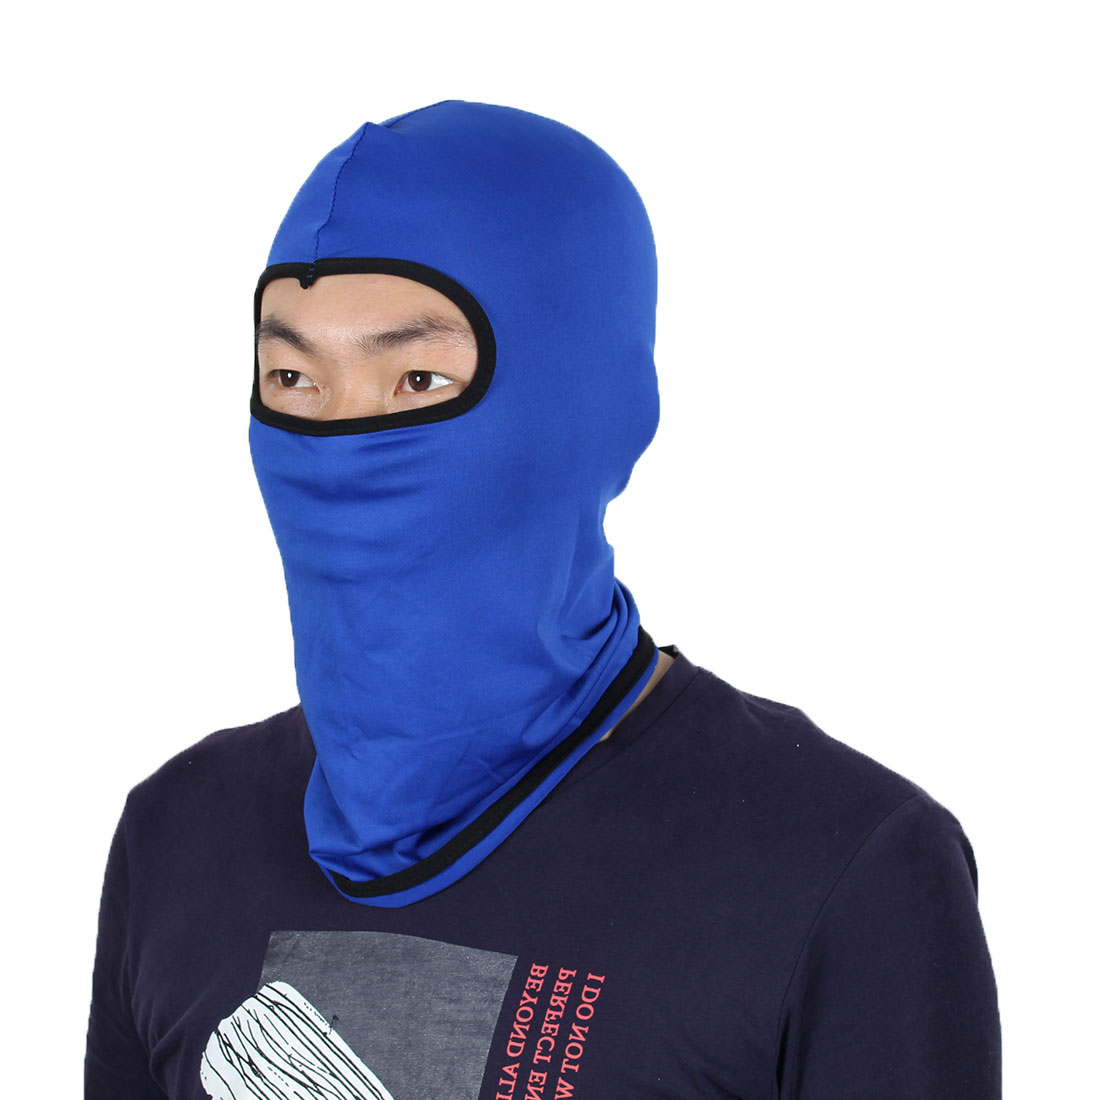 Full Face Mask Outdoor Activities Neck Protector Hat Helmet Balaclava Dark Blue